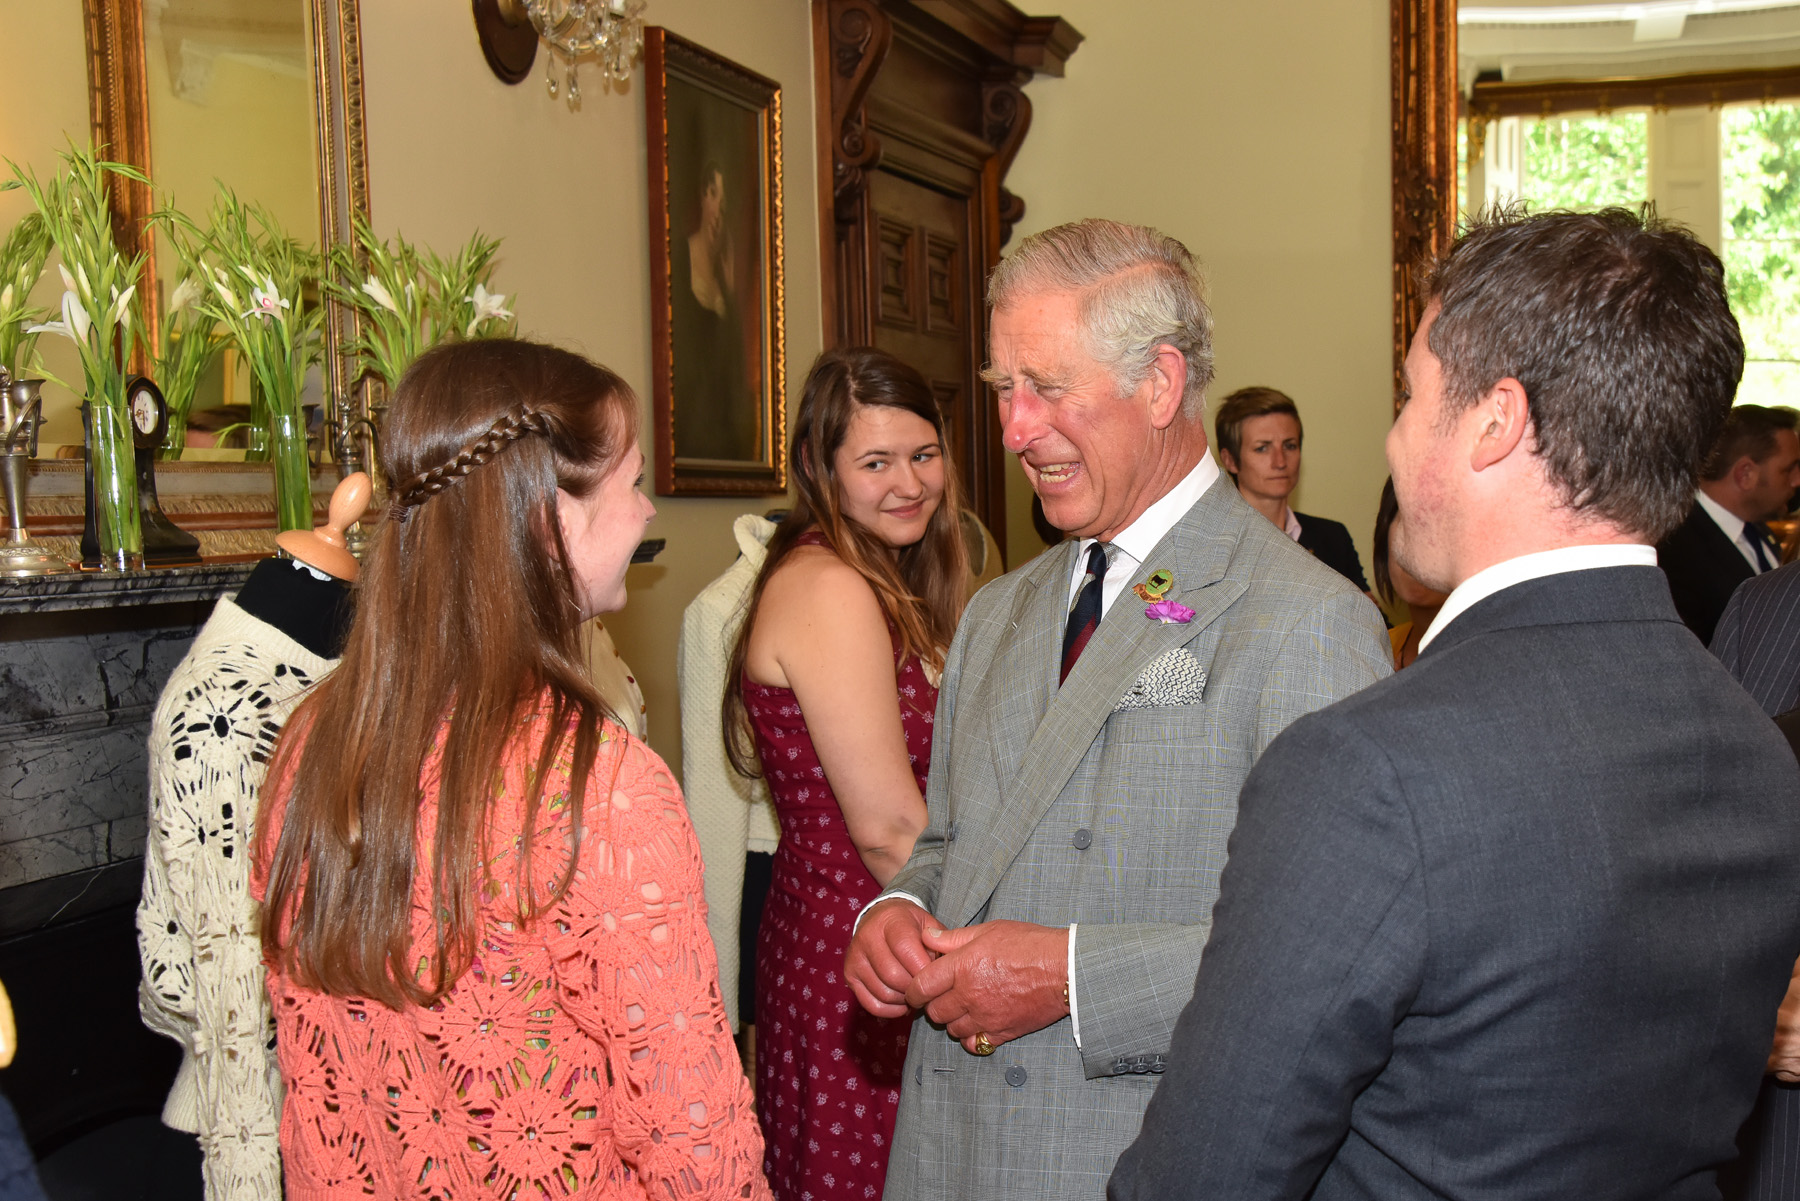 Discussing knitting, crochet and wool, with HRH Prince Charles. Image courtesy of Anthony Pugh Photography.